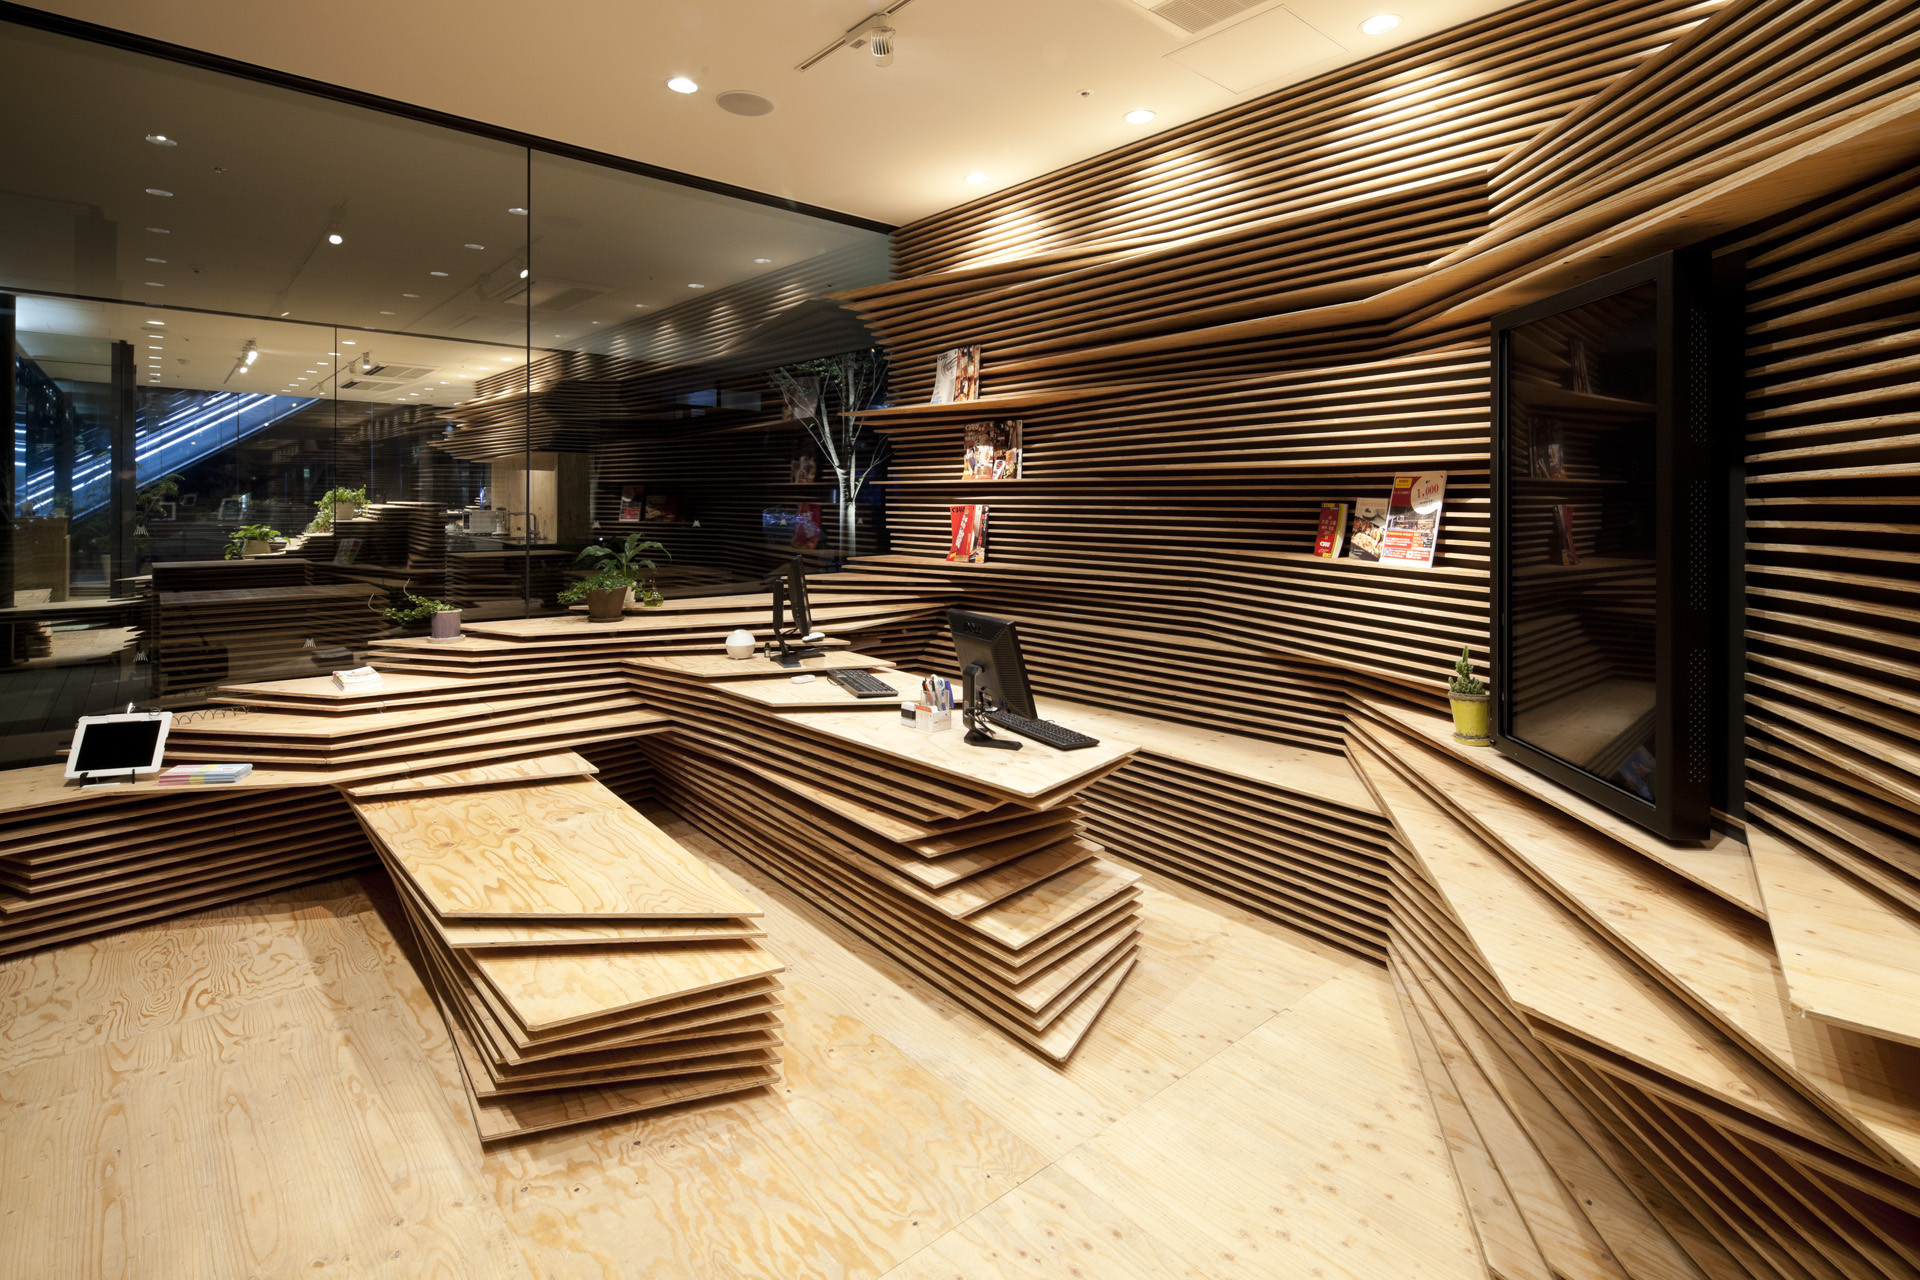 shun shoku lounge by guranavi kengo kuma associates archdaily. Black Bedroom Furniture Sets. Home Design Ideas